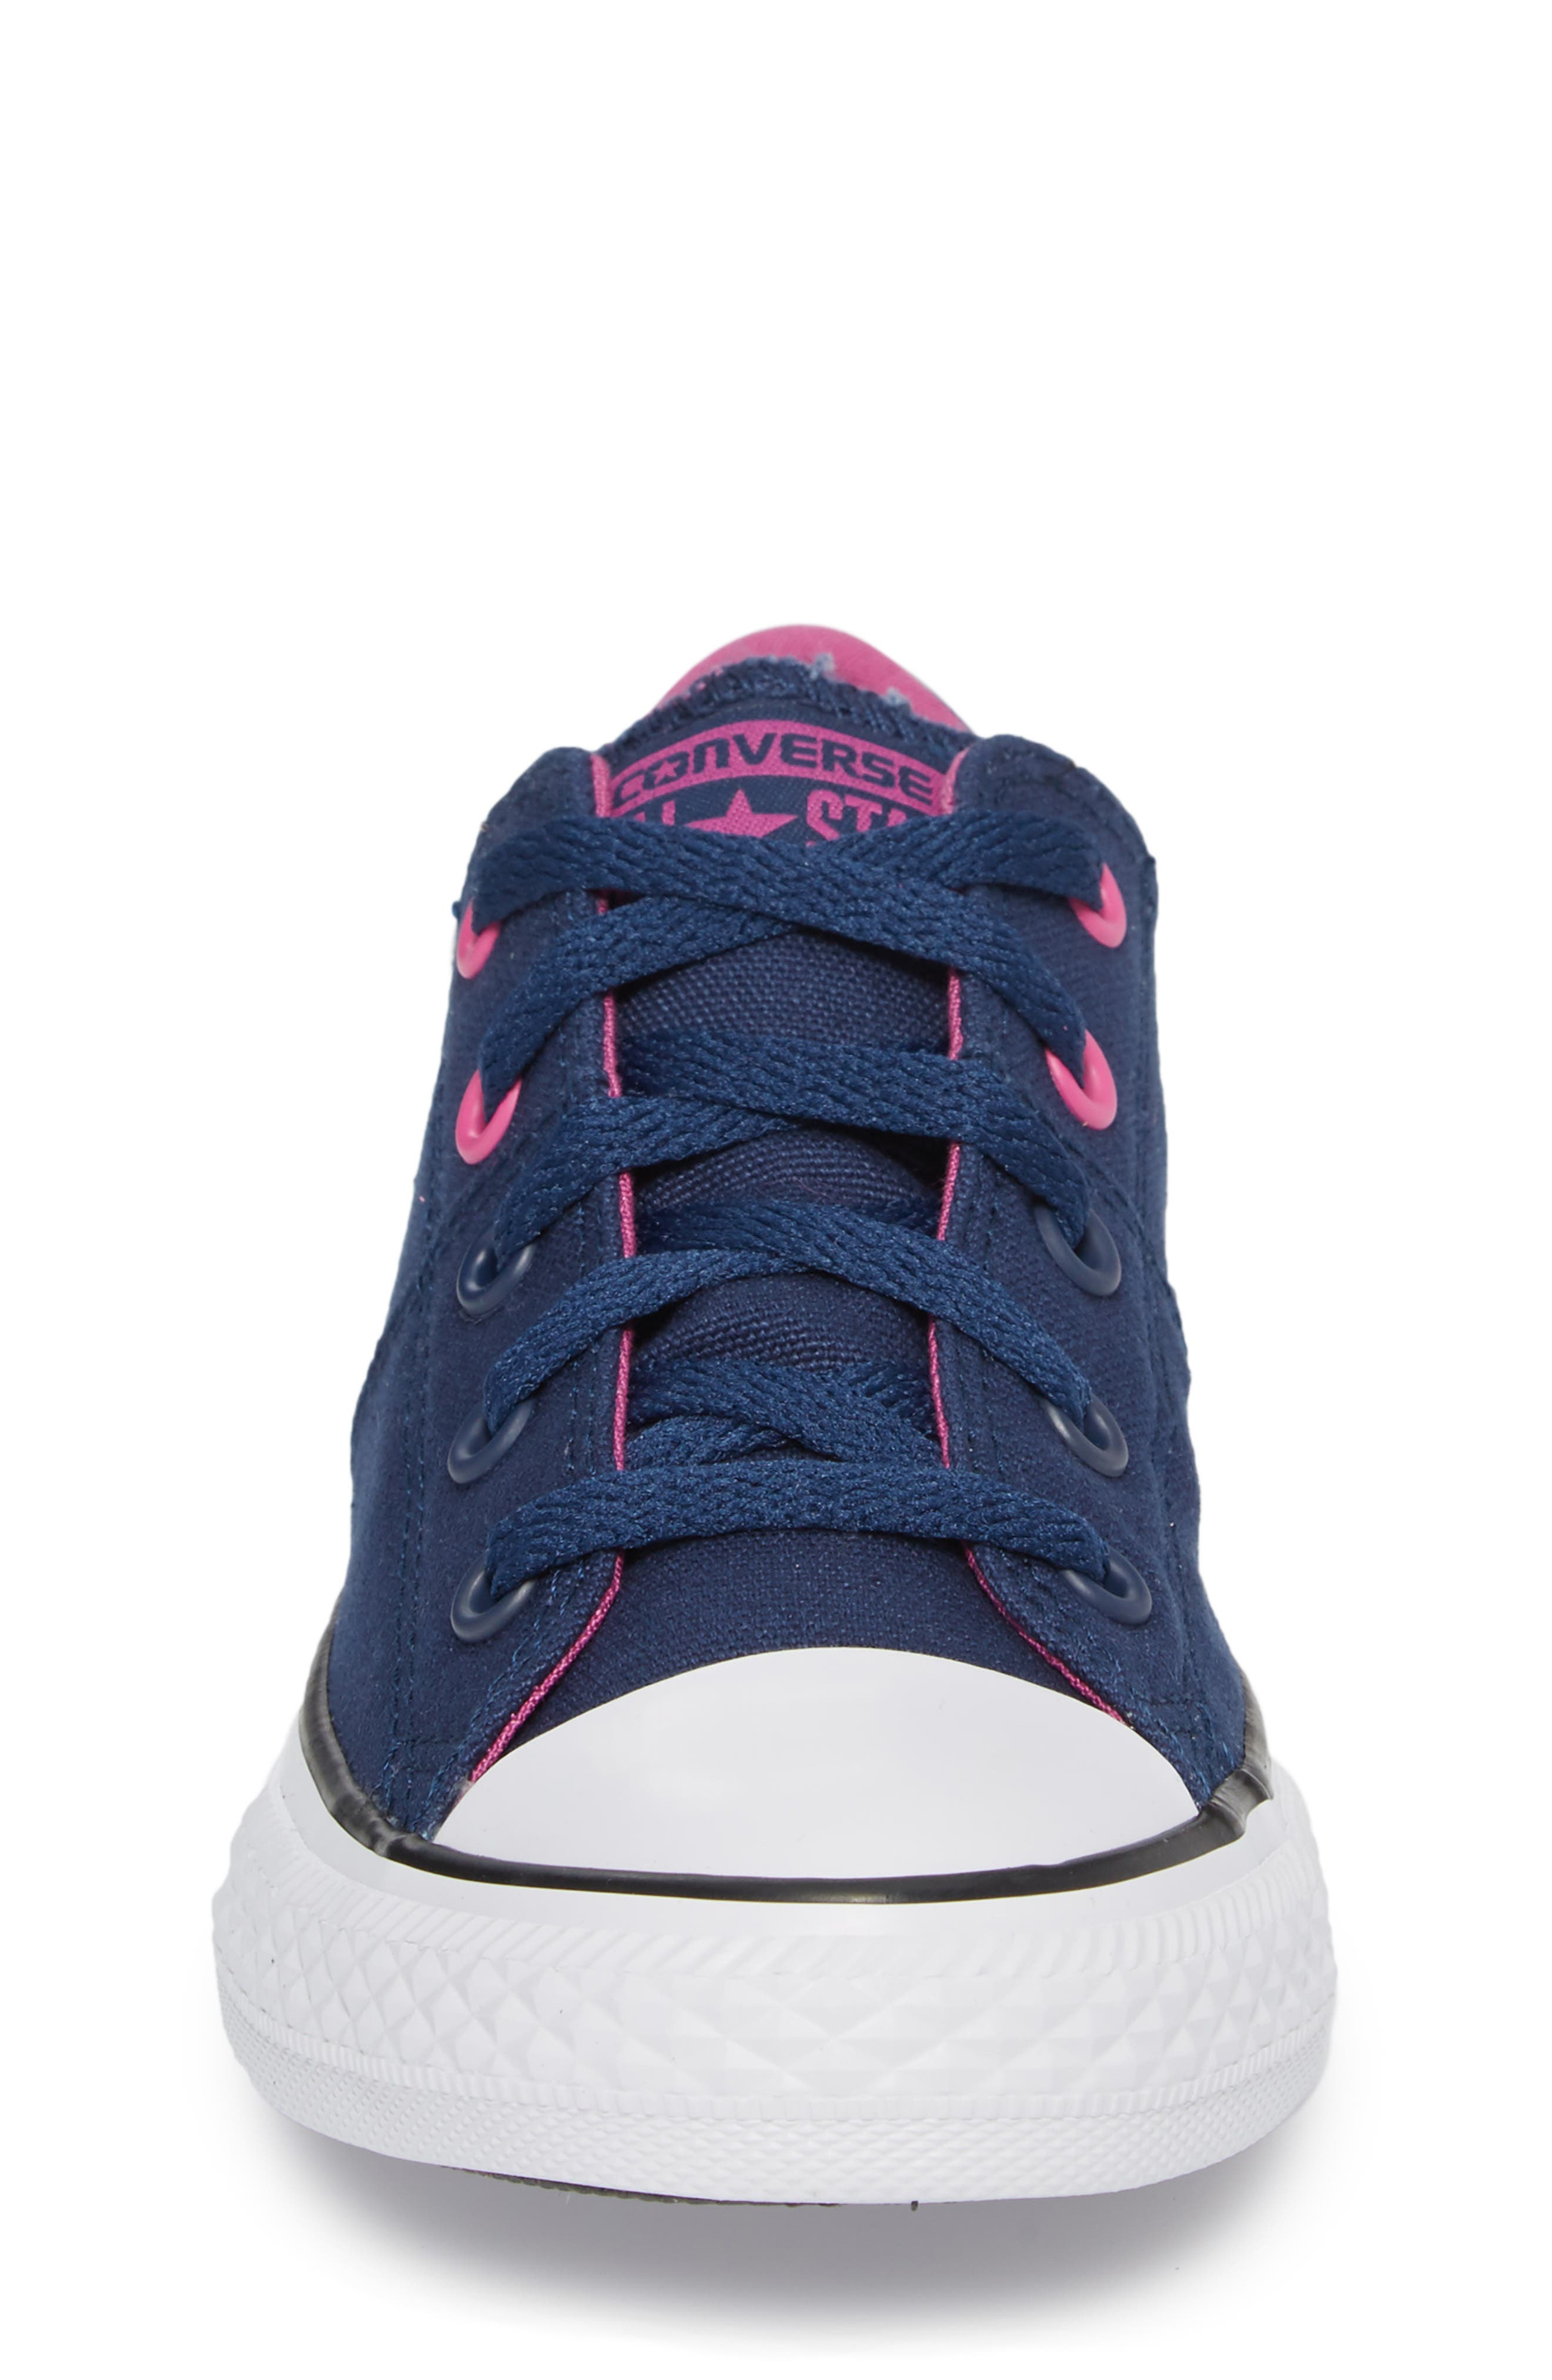 Alternate Image 4  - Converse Chuck Taylor® All Star® Madison Low Top Sneaker (Toddler, Little Kid & Big Kid)